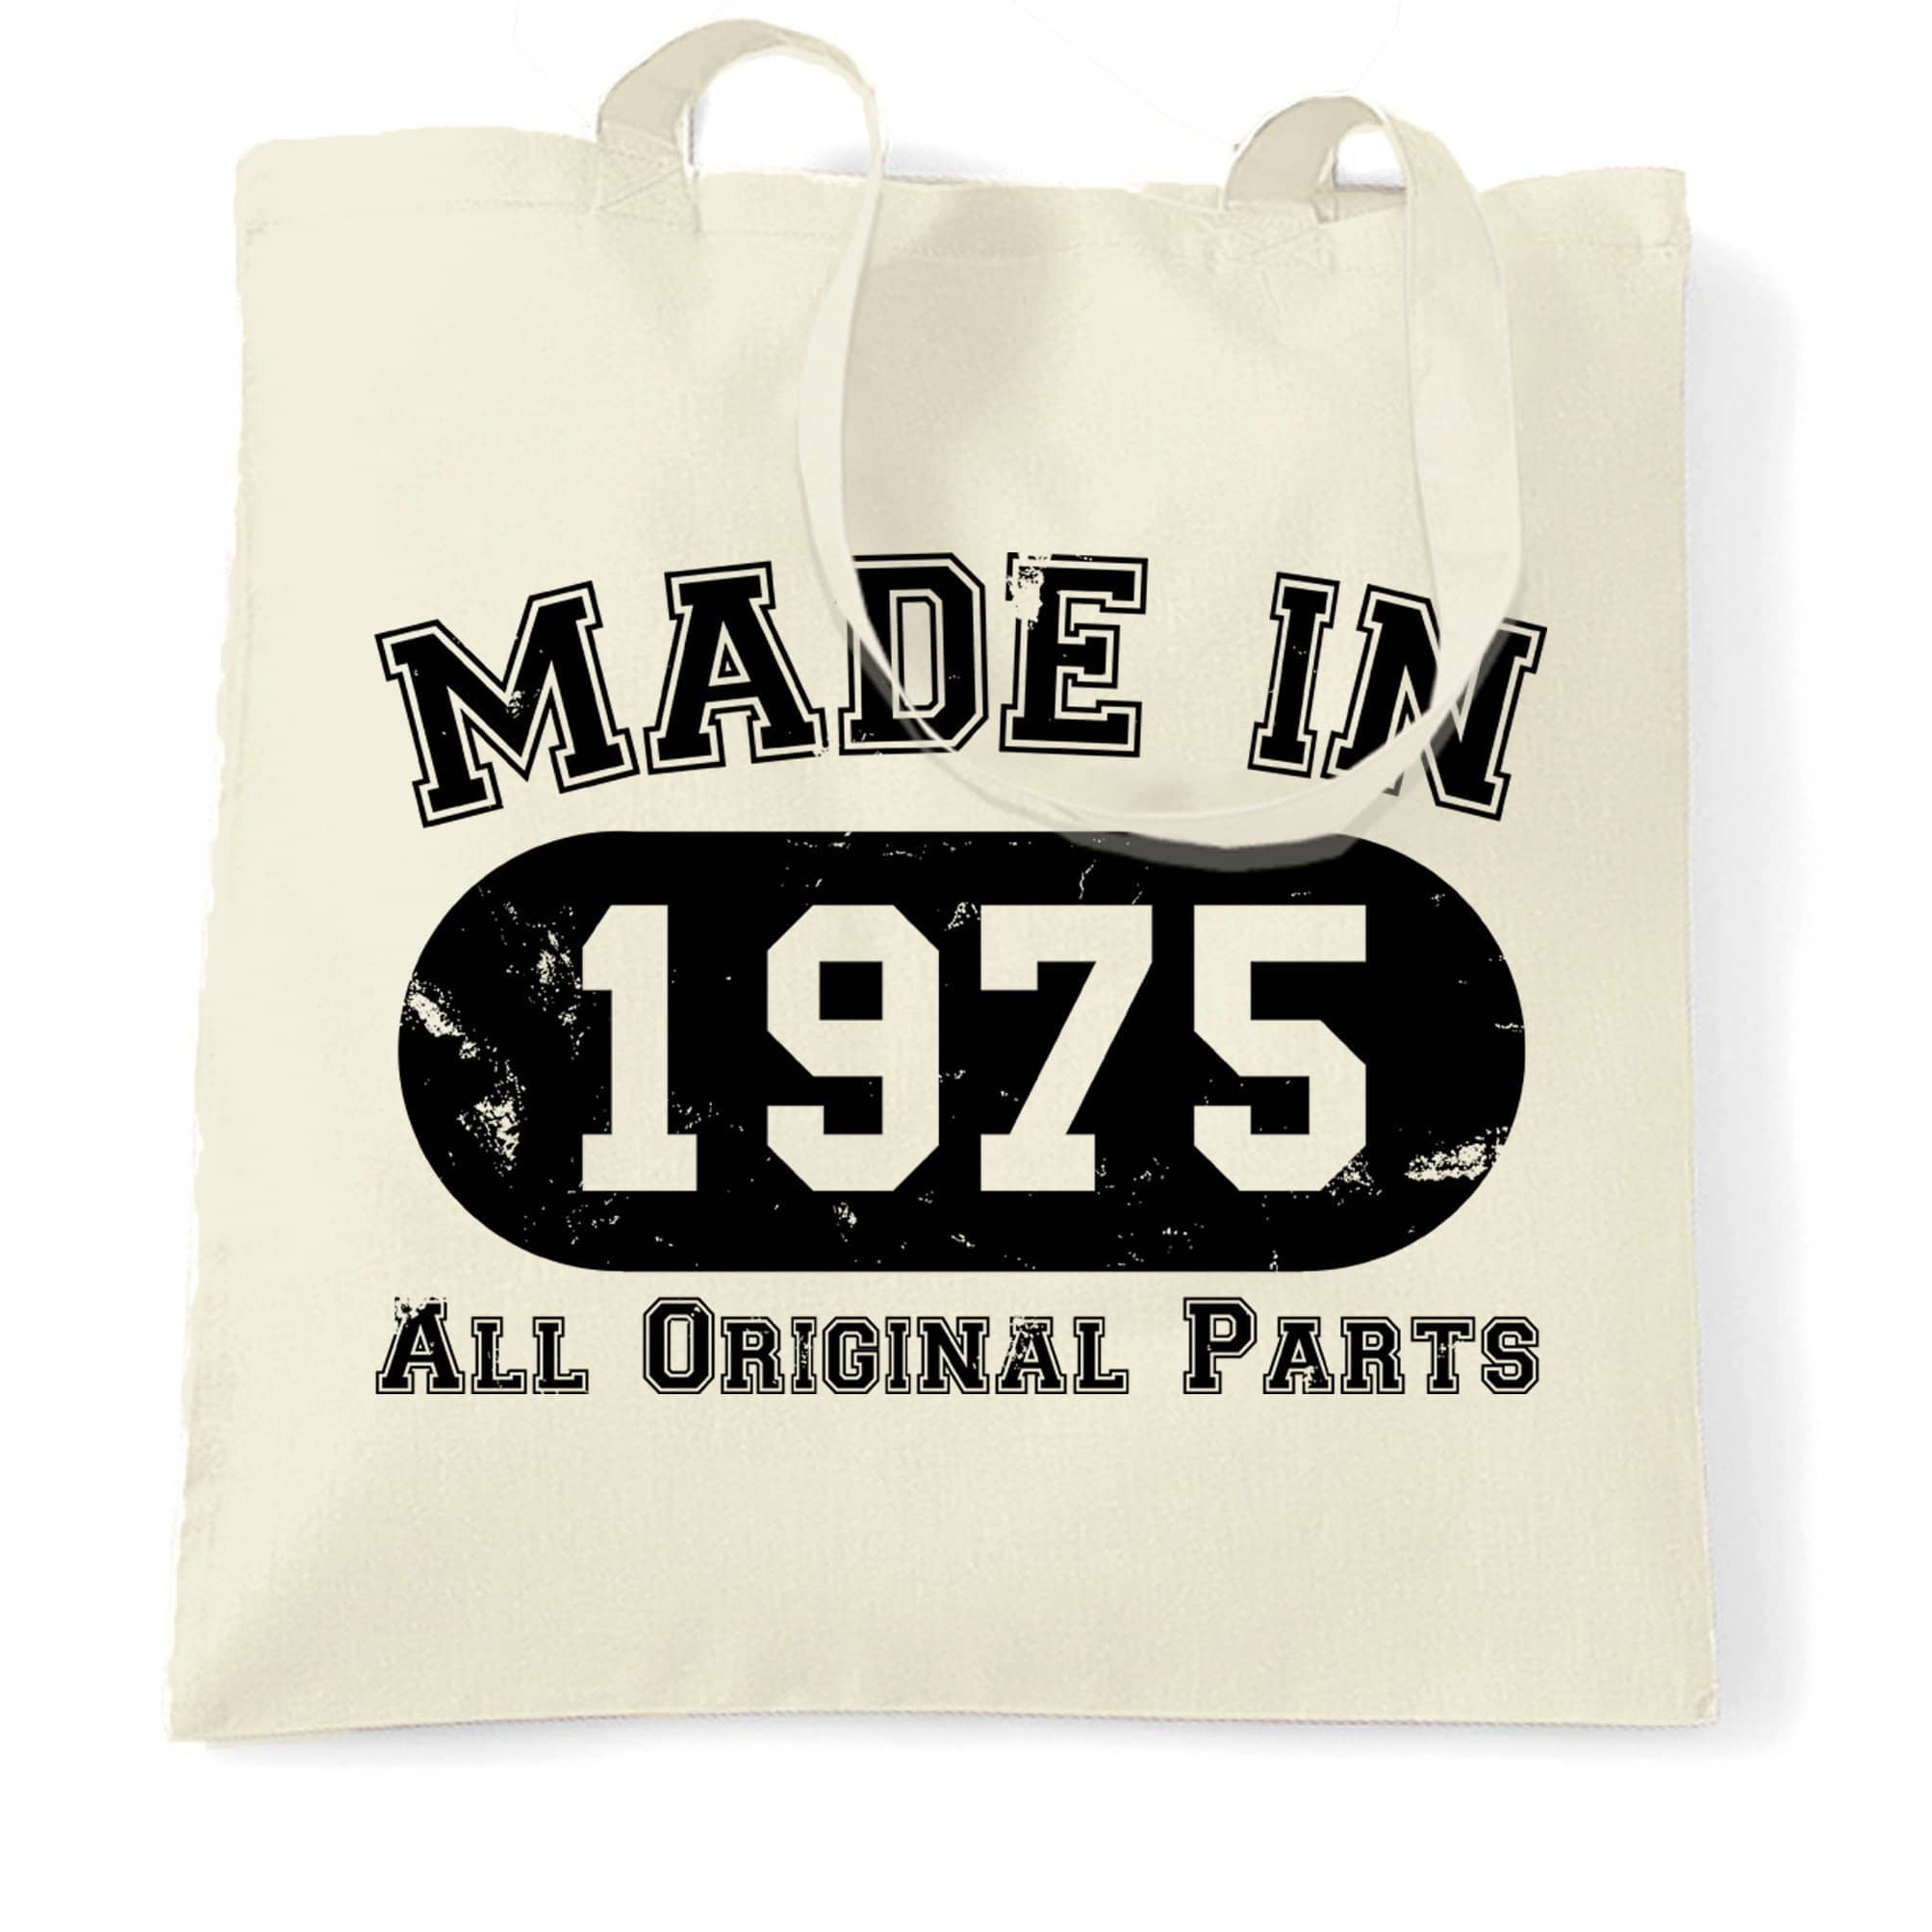 Made in 1975 All Original Parts Tote Bag [Distressed]